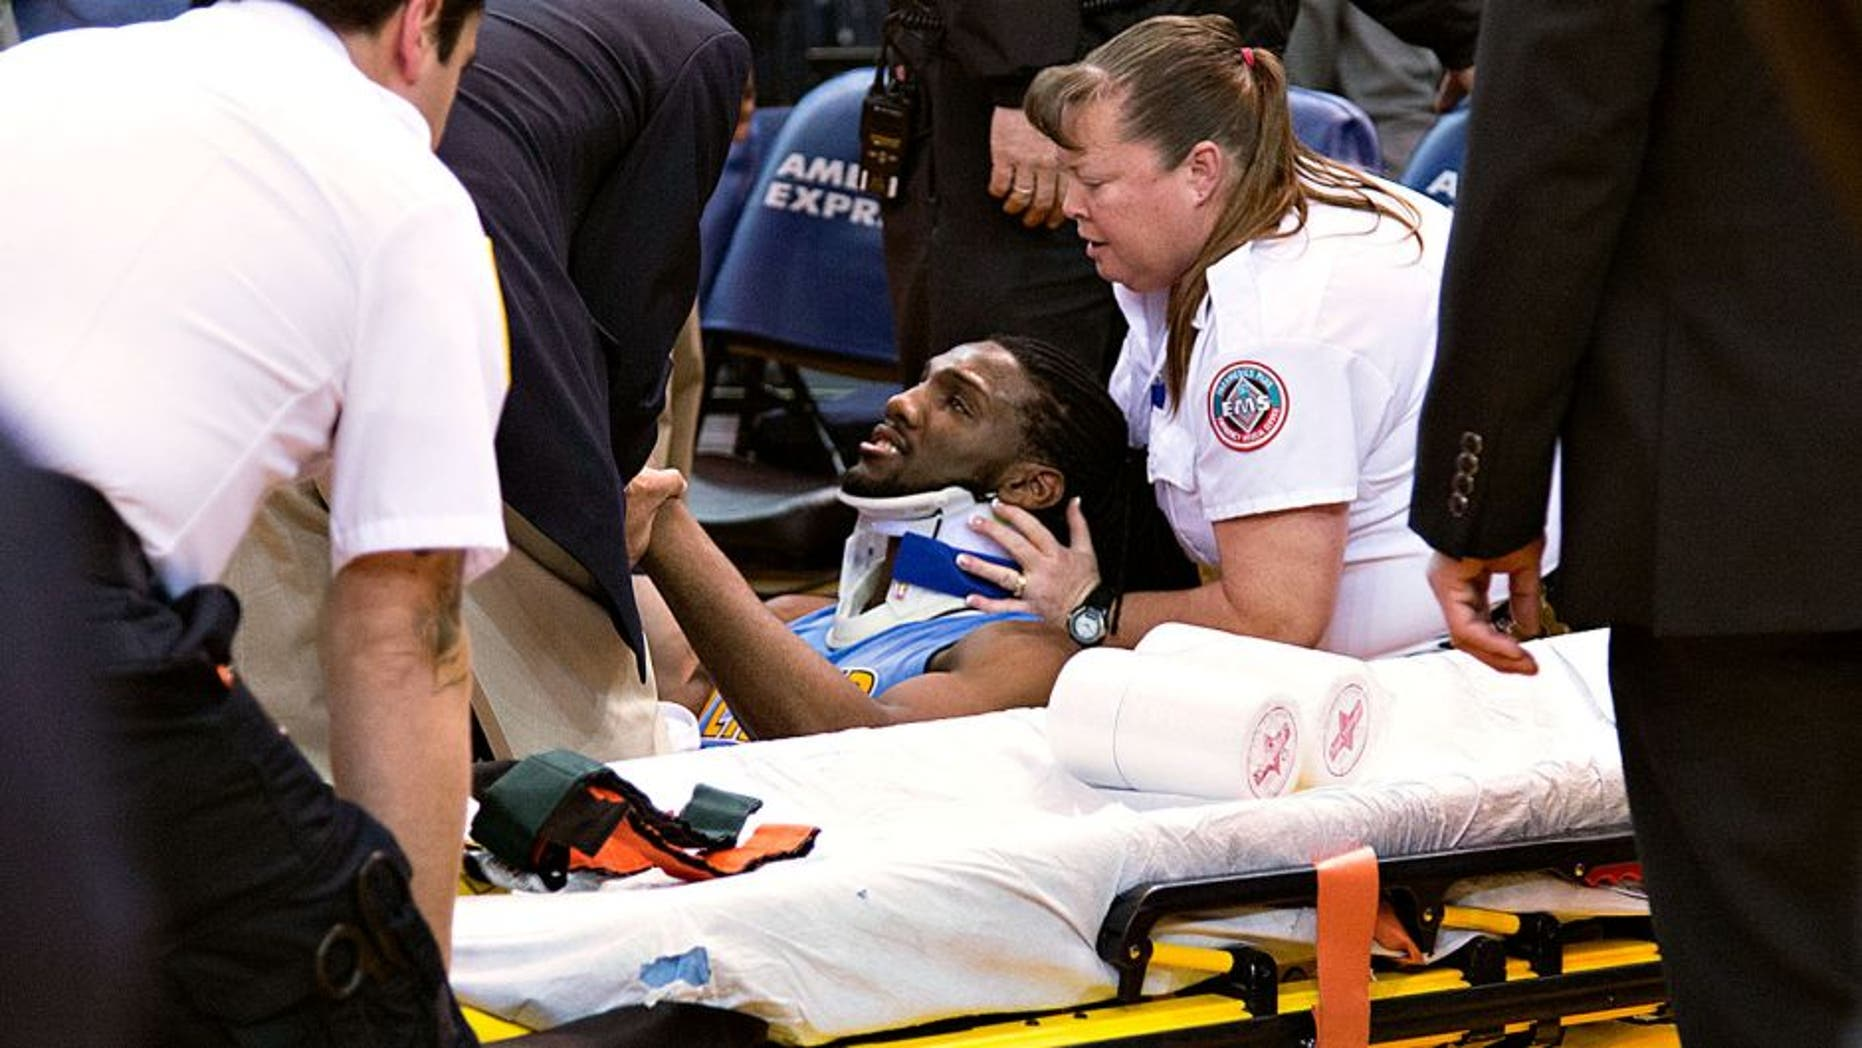 January 2, 2016; Oakland, CA, USA; Denver Nuggets forward Kenneth Faried (35) receives medical attention after the game against the Golden State Warriors at Oracle Arena. The Warriors defeated the Nuggets 111-108 in overtime. Mandatory Credit: Kyle Terada-USA TODAY Sports